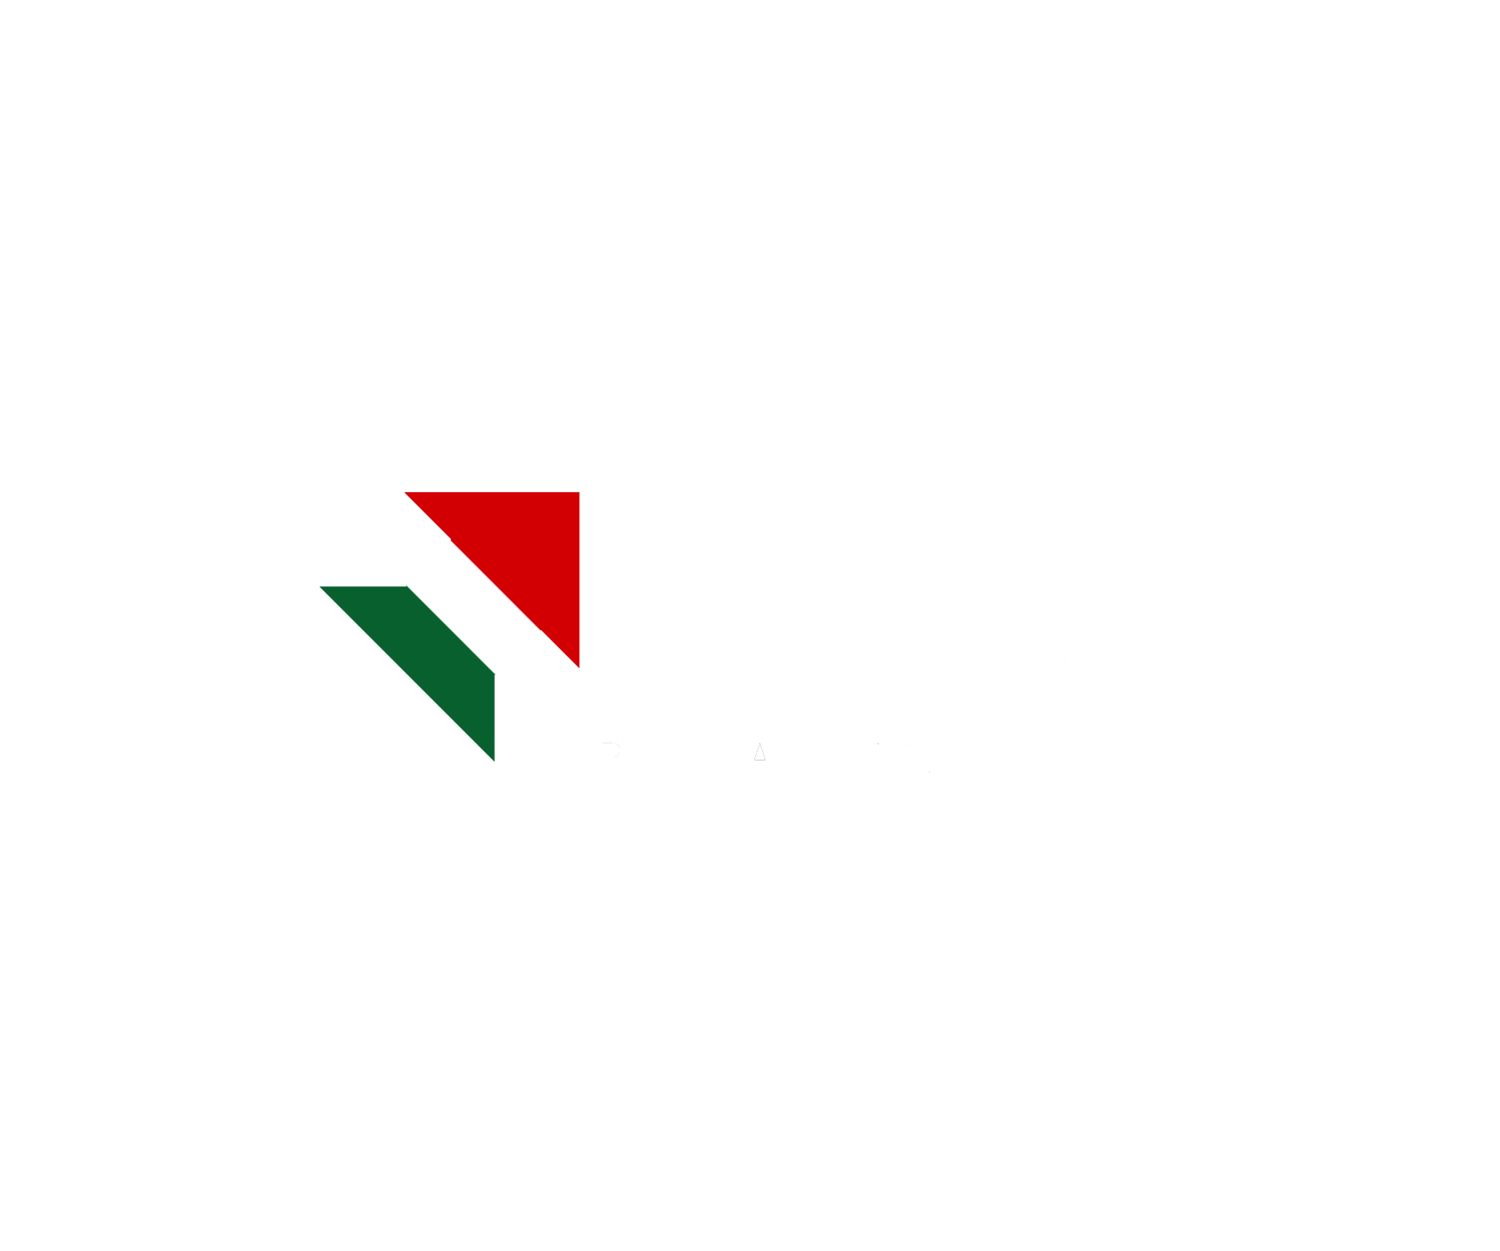 Salto Restaurant & Bar